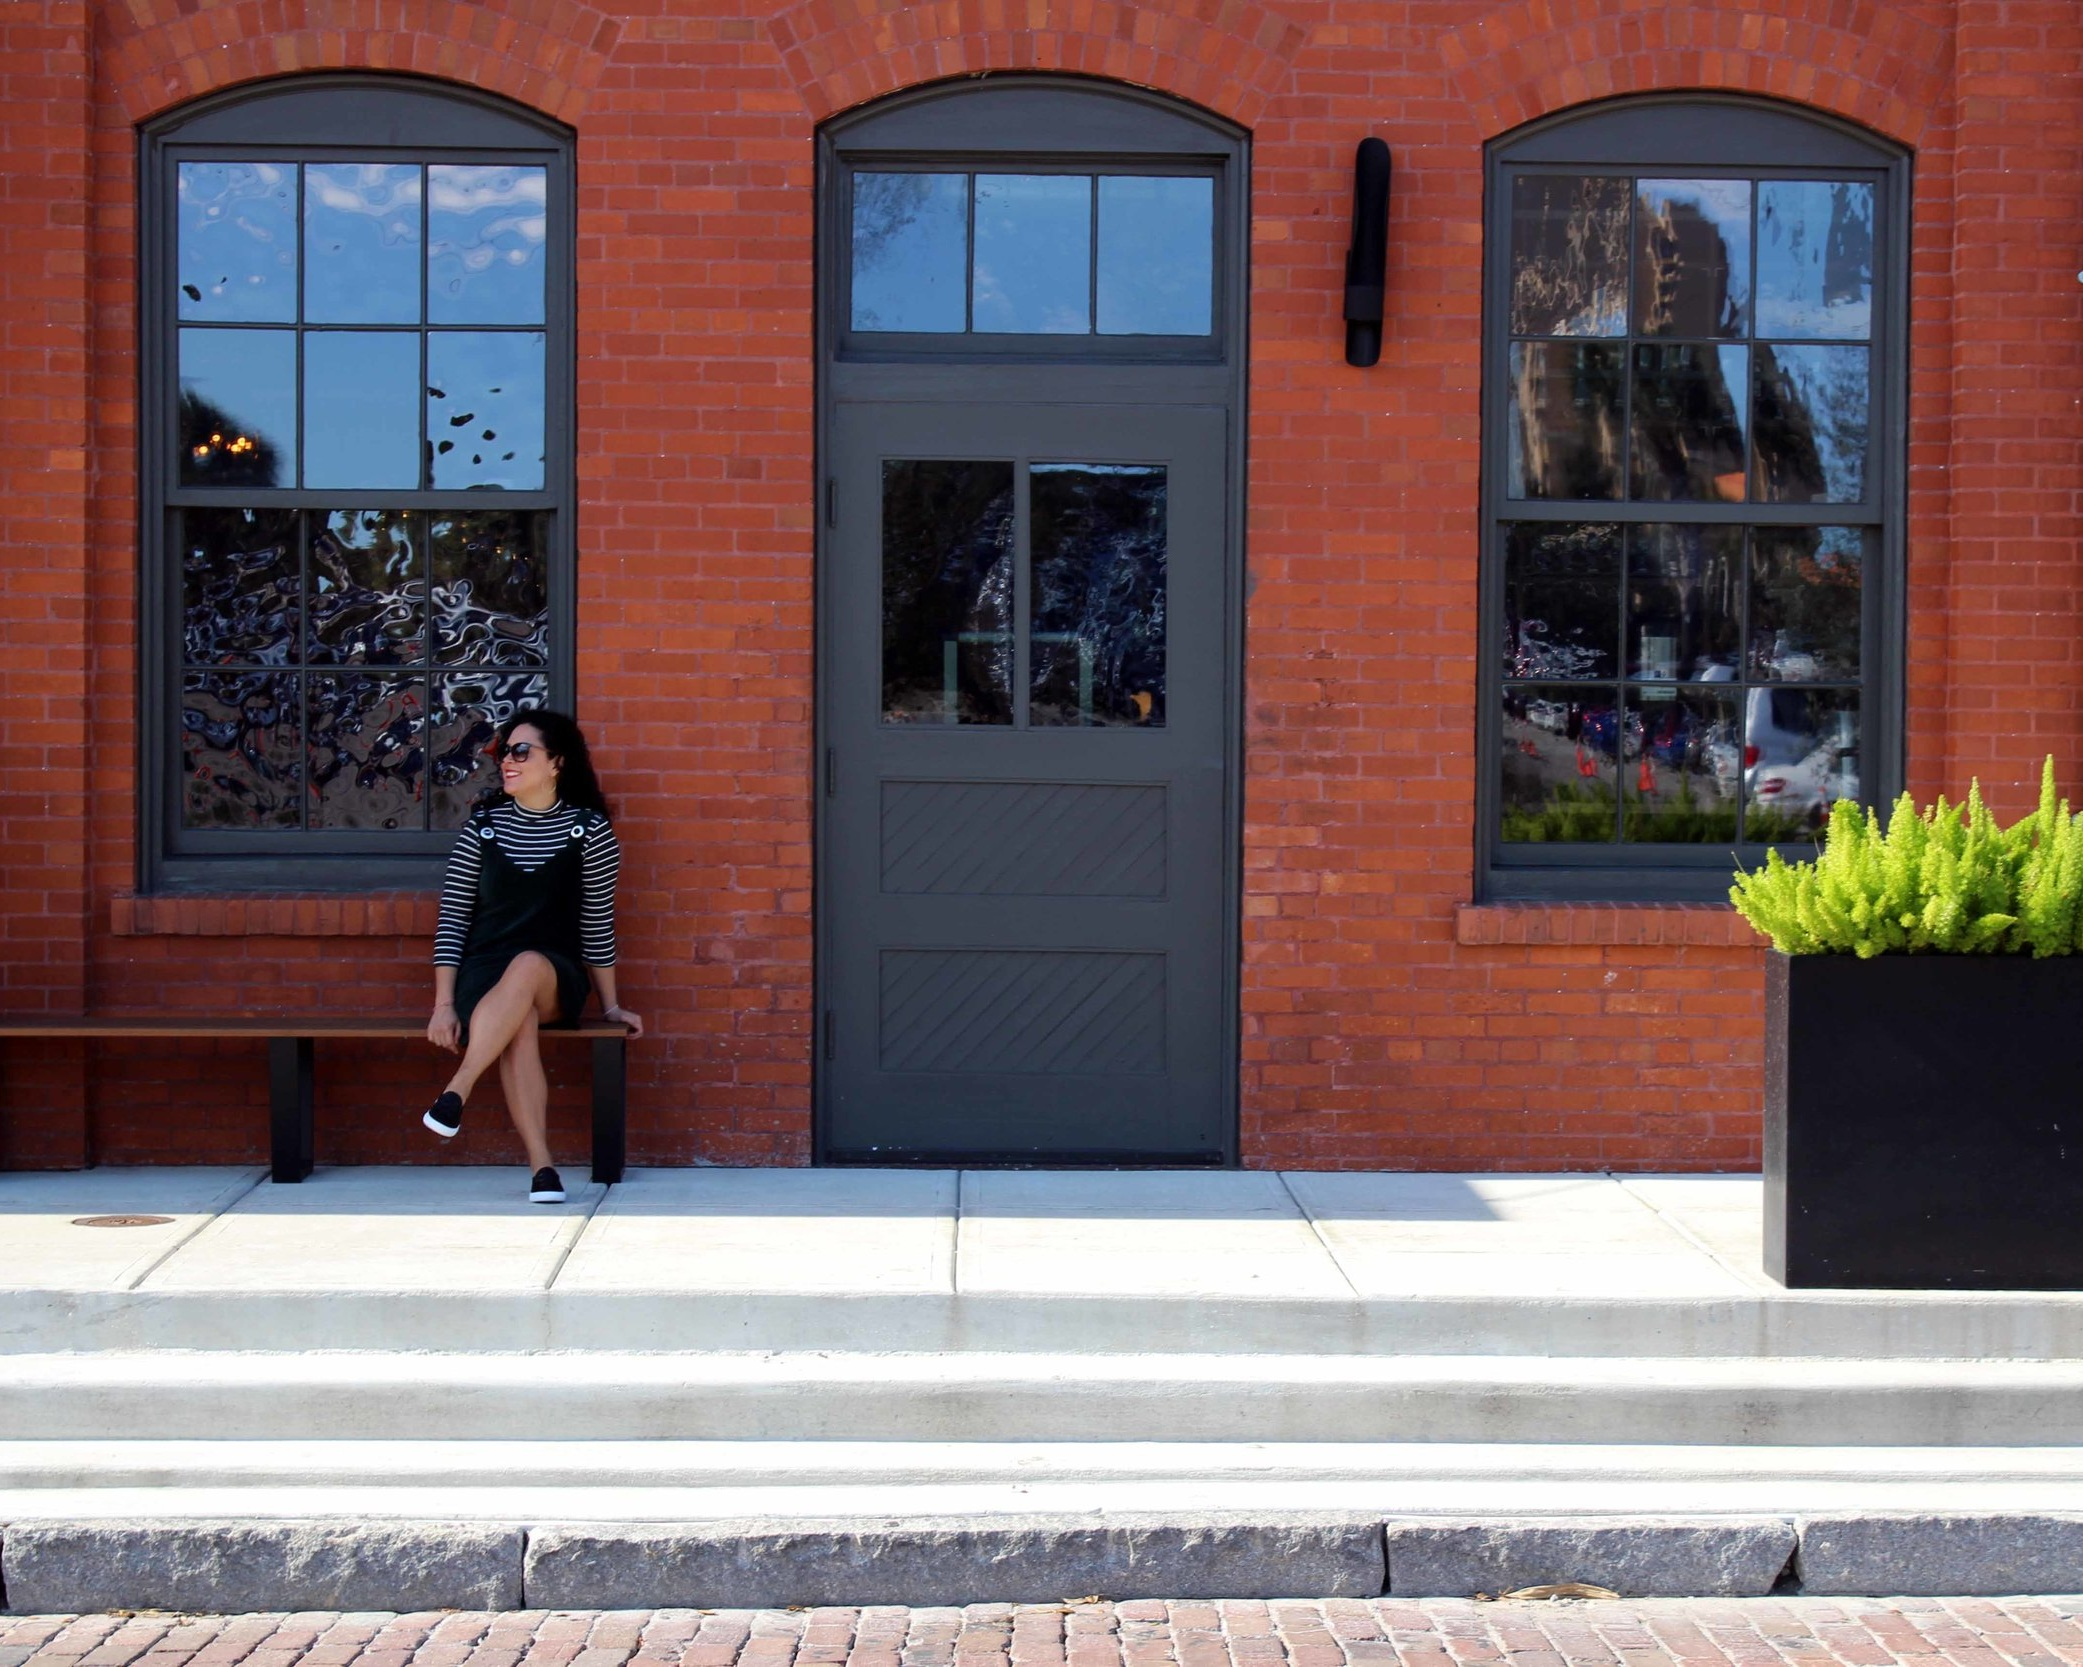 IG-posing in front of Armature Works, a former warehouse turned into a cool new Tampa foodhall